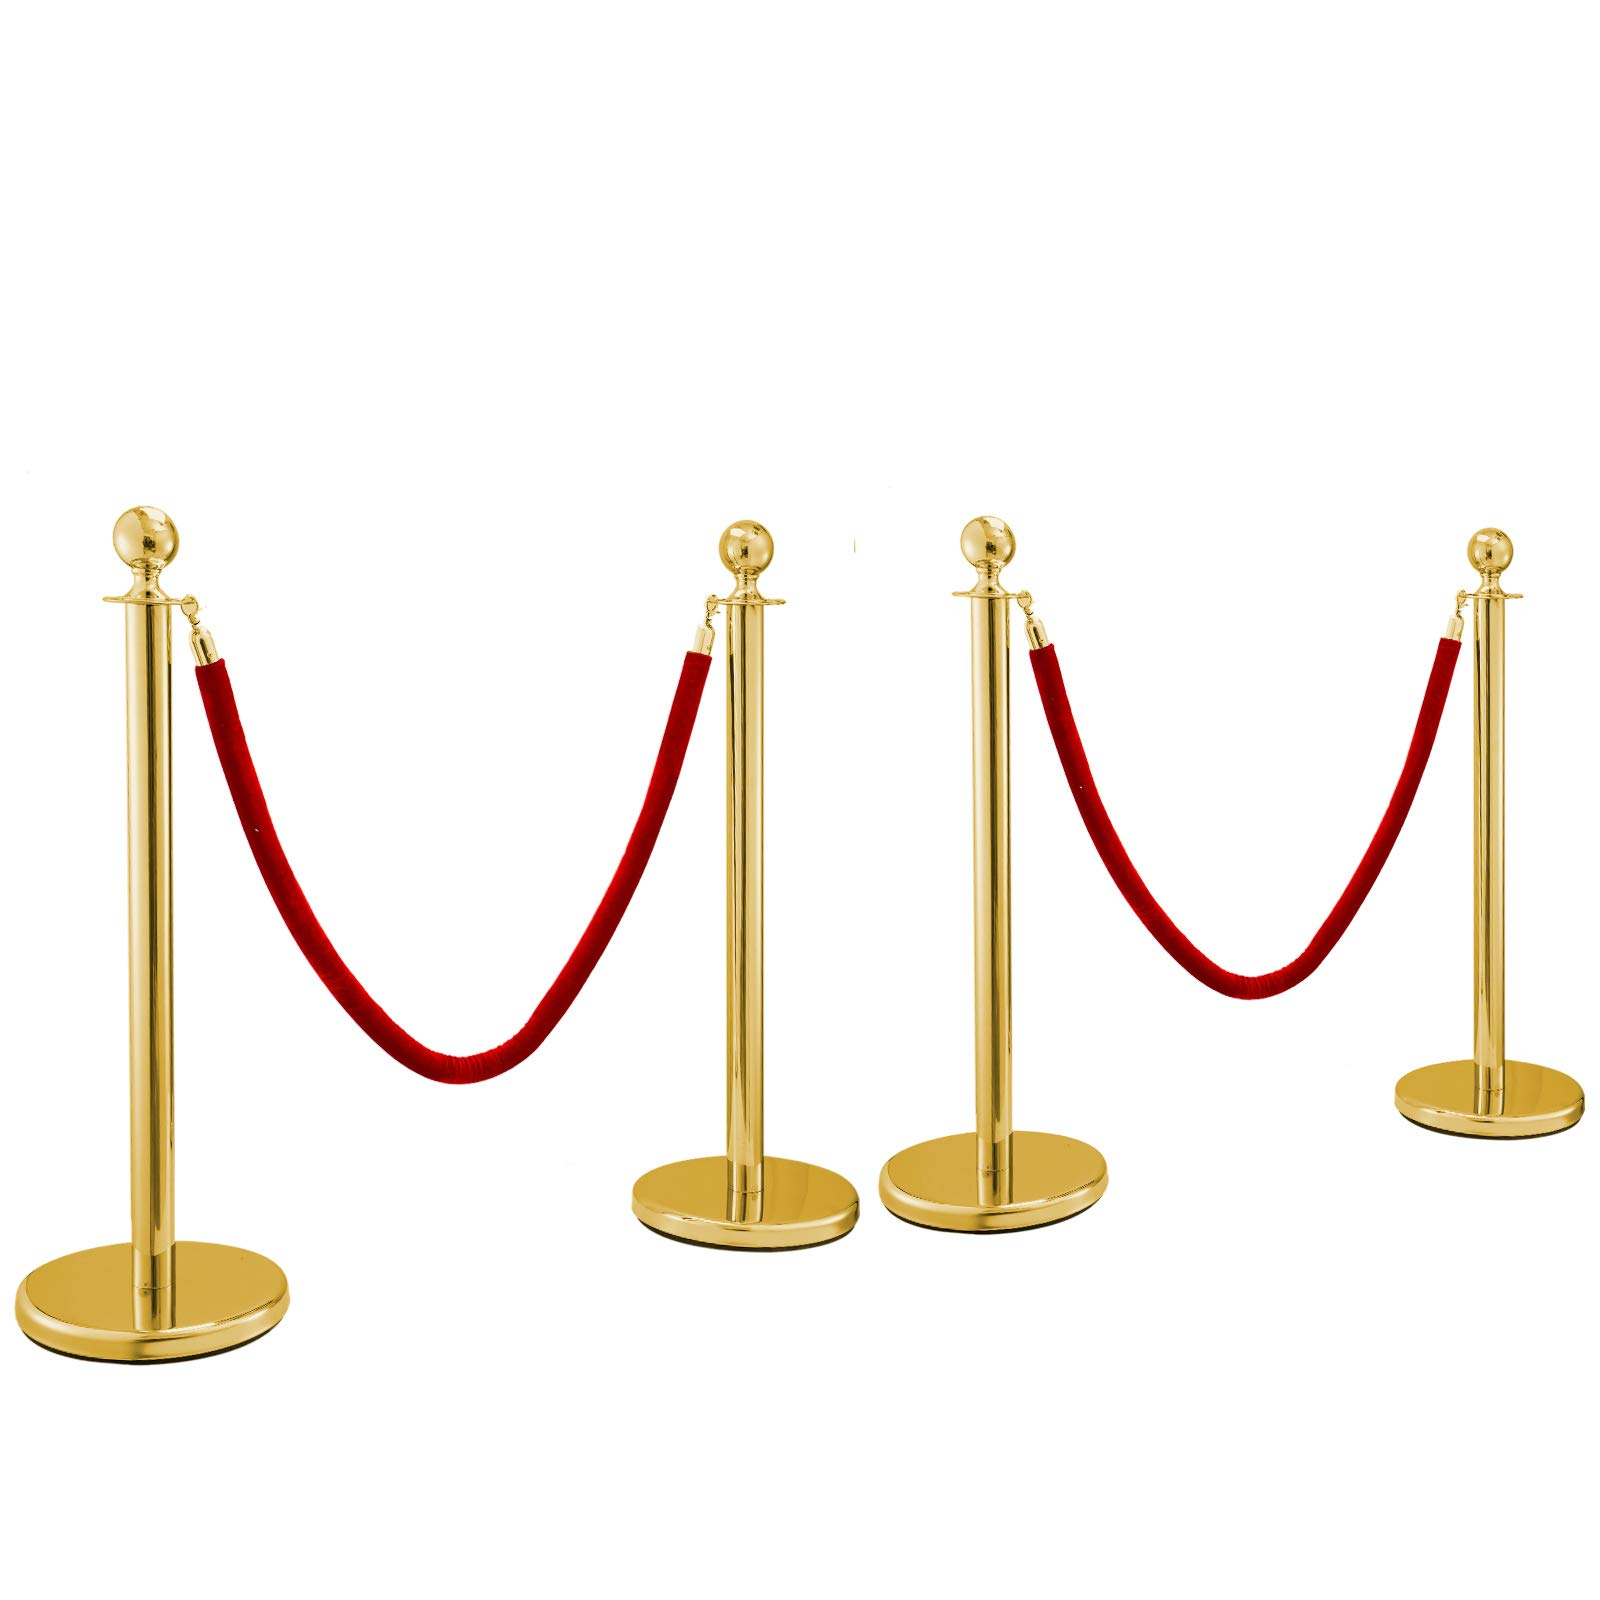 BestEquip 4Pcs Gold Stainless Steel Stanchion Posts Queue Red Velvet Ropes 38In Rope Barriers Queue Line Crowd Control Barriers for Patrty Supplies by BestEquip